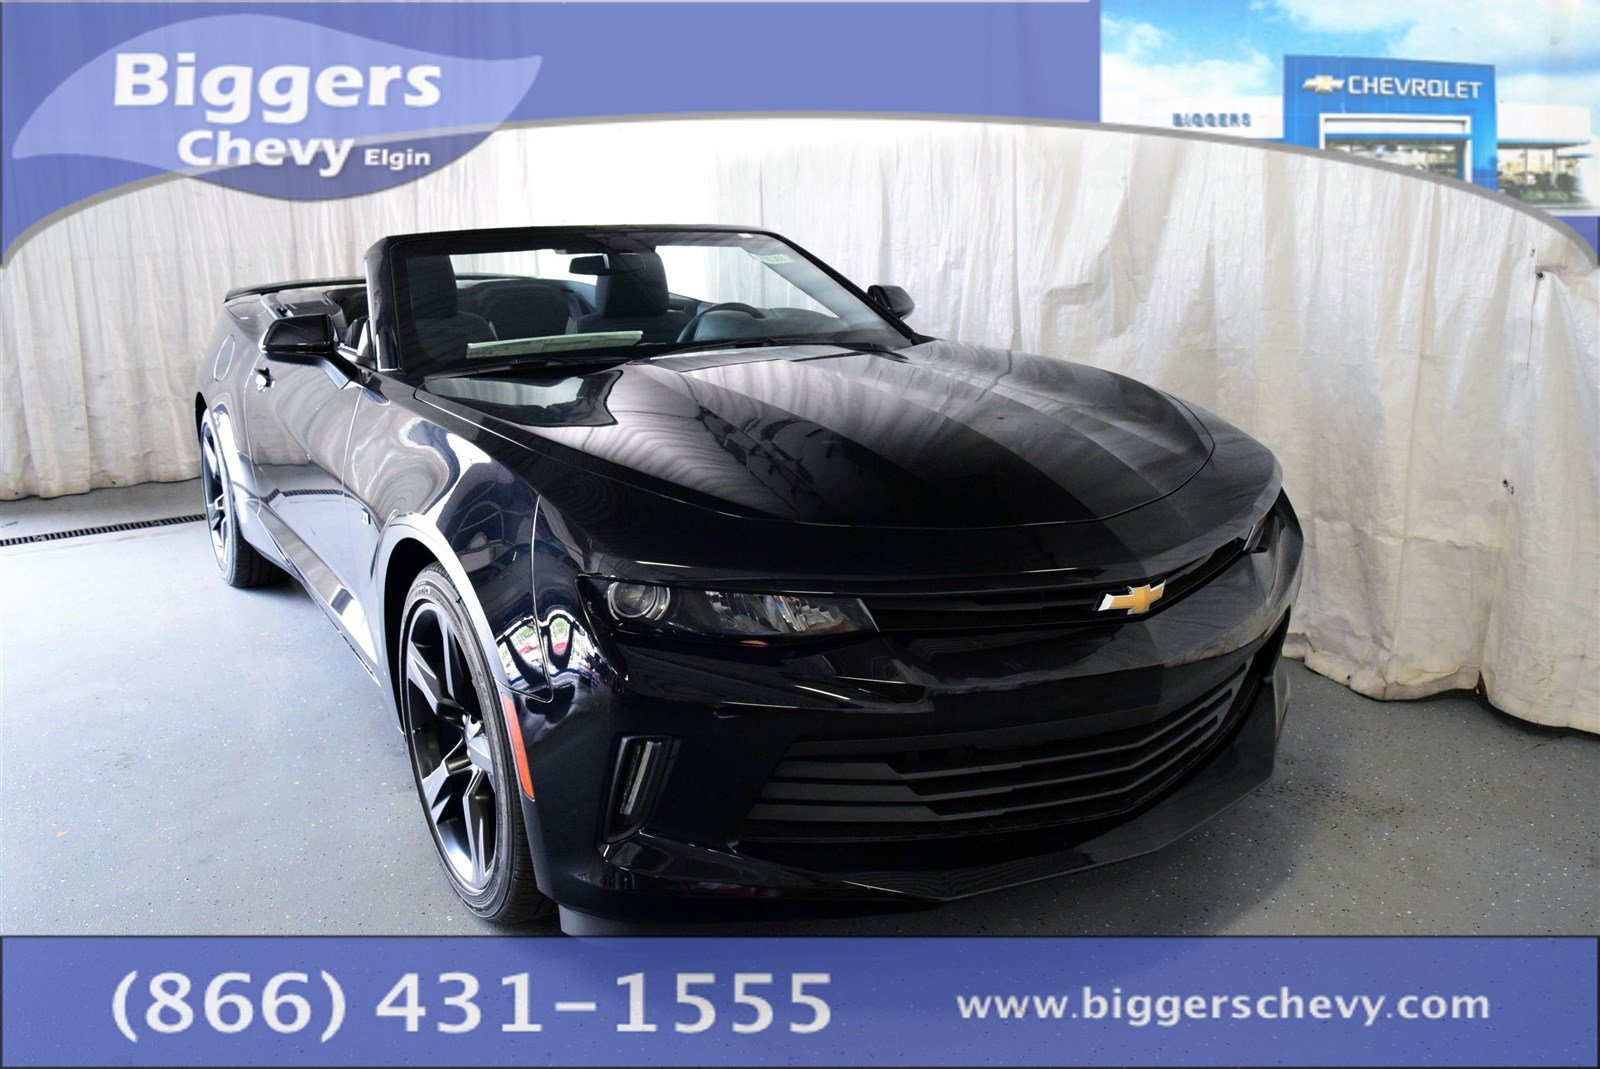 chevrolet camaro upcoming front sports car new vehicles convertible coupe design side driver